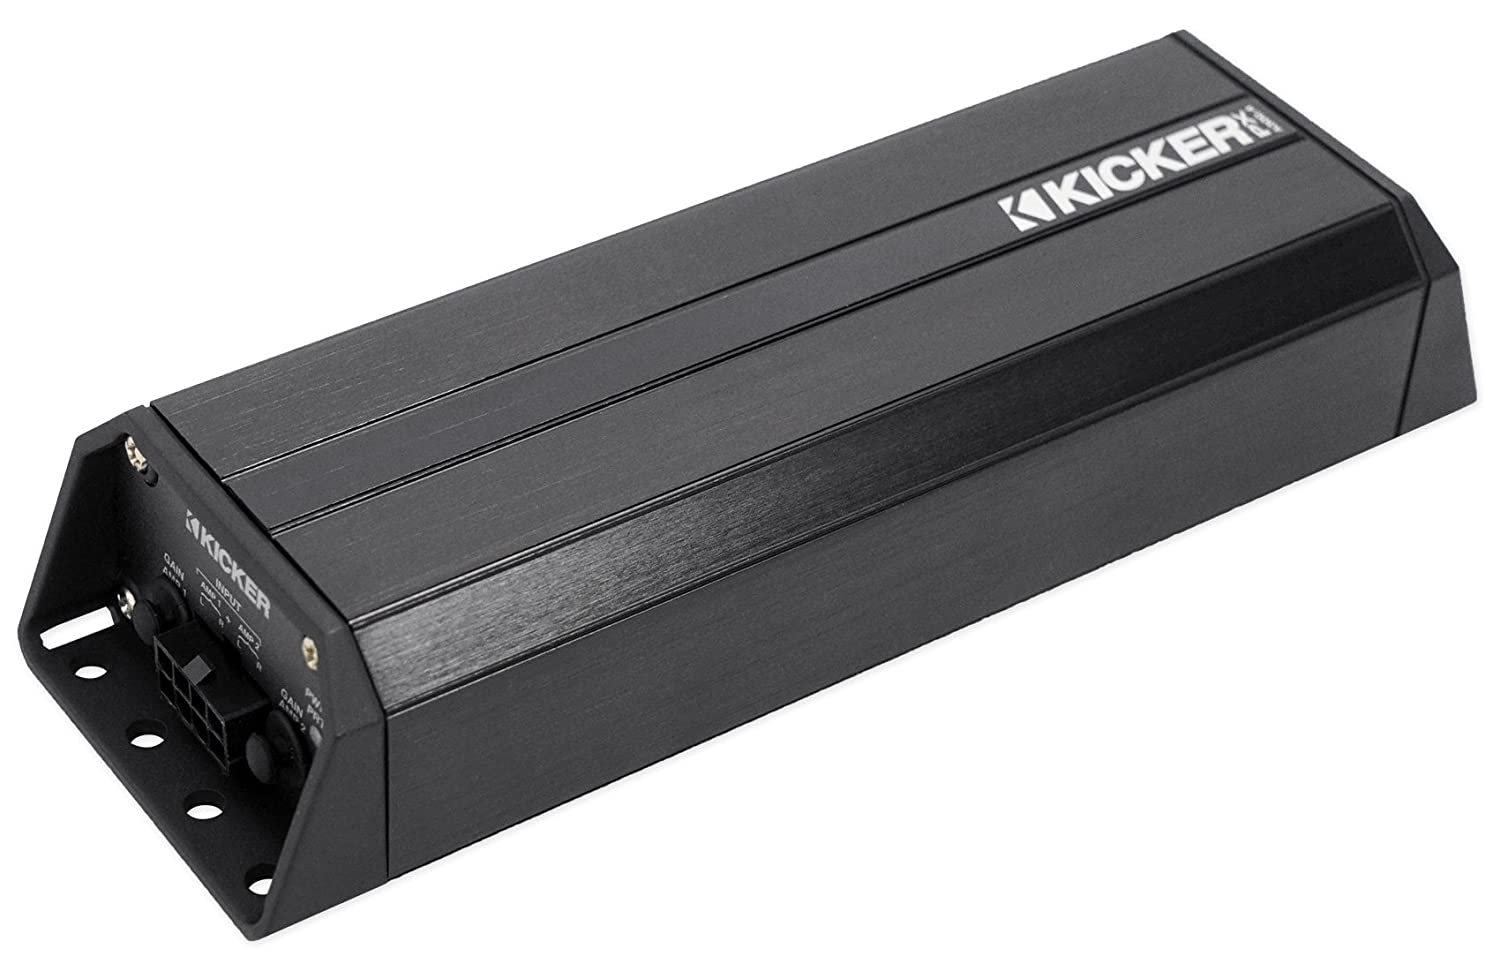 Amazon.com: Kicker 42PXA300.4 300w 4-Channel Amplifier 4 Polaris/Motorcycle/ATV/UTV/RZR/Cart: Car Electronics